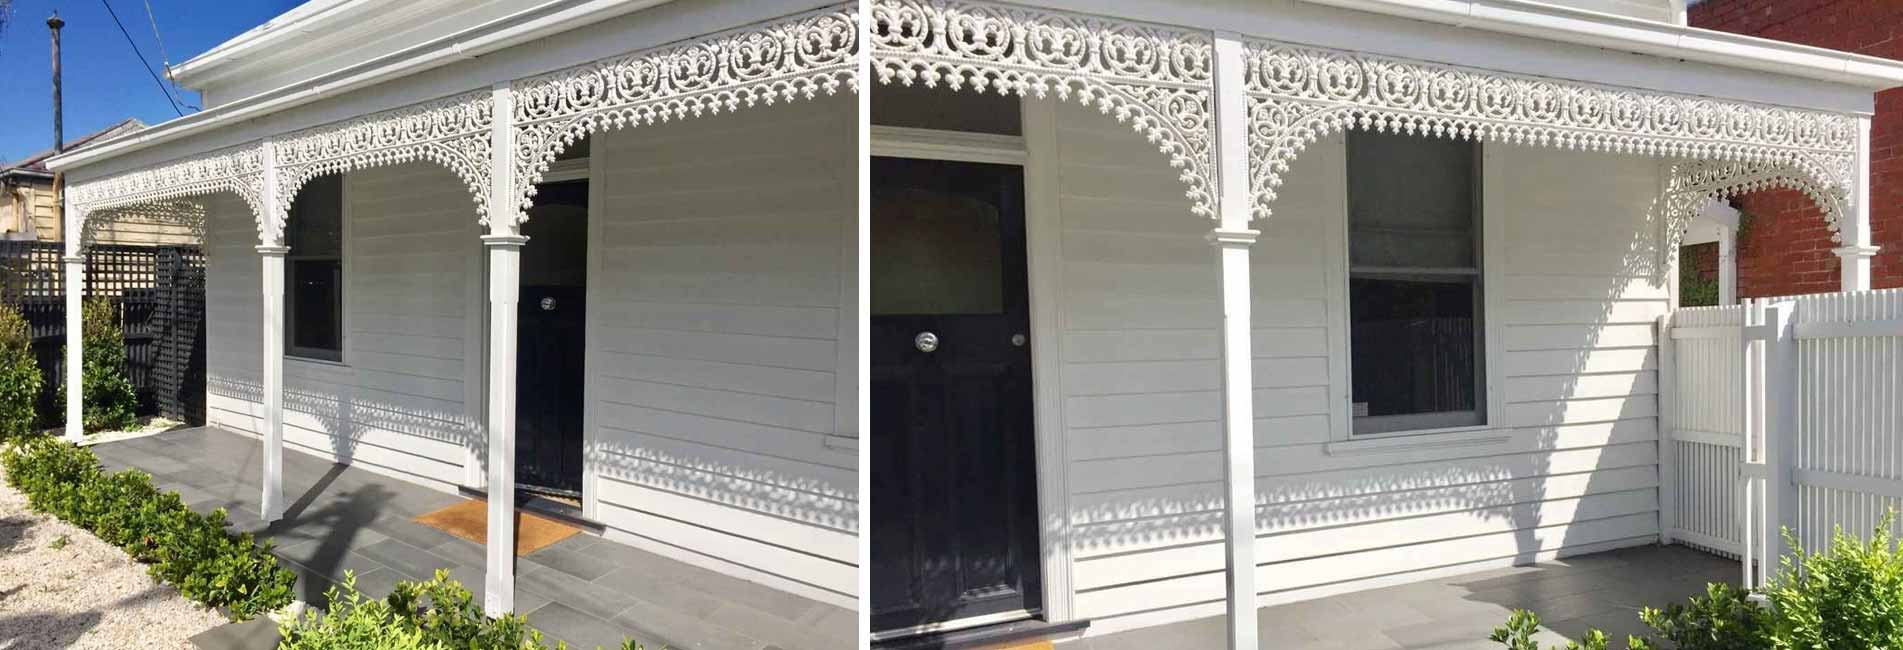 House Painter Boroondara, Painting Contractor Toorak, Window Painting Doncaster